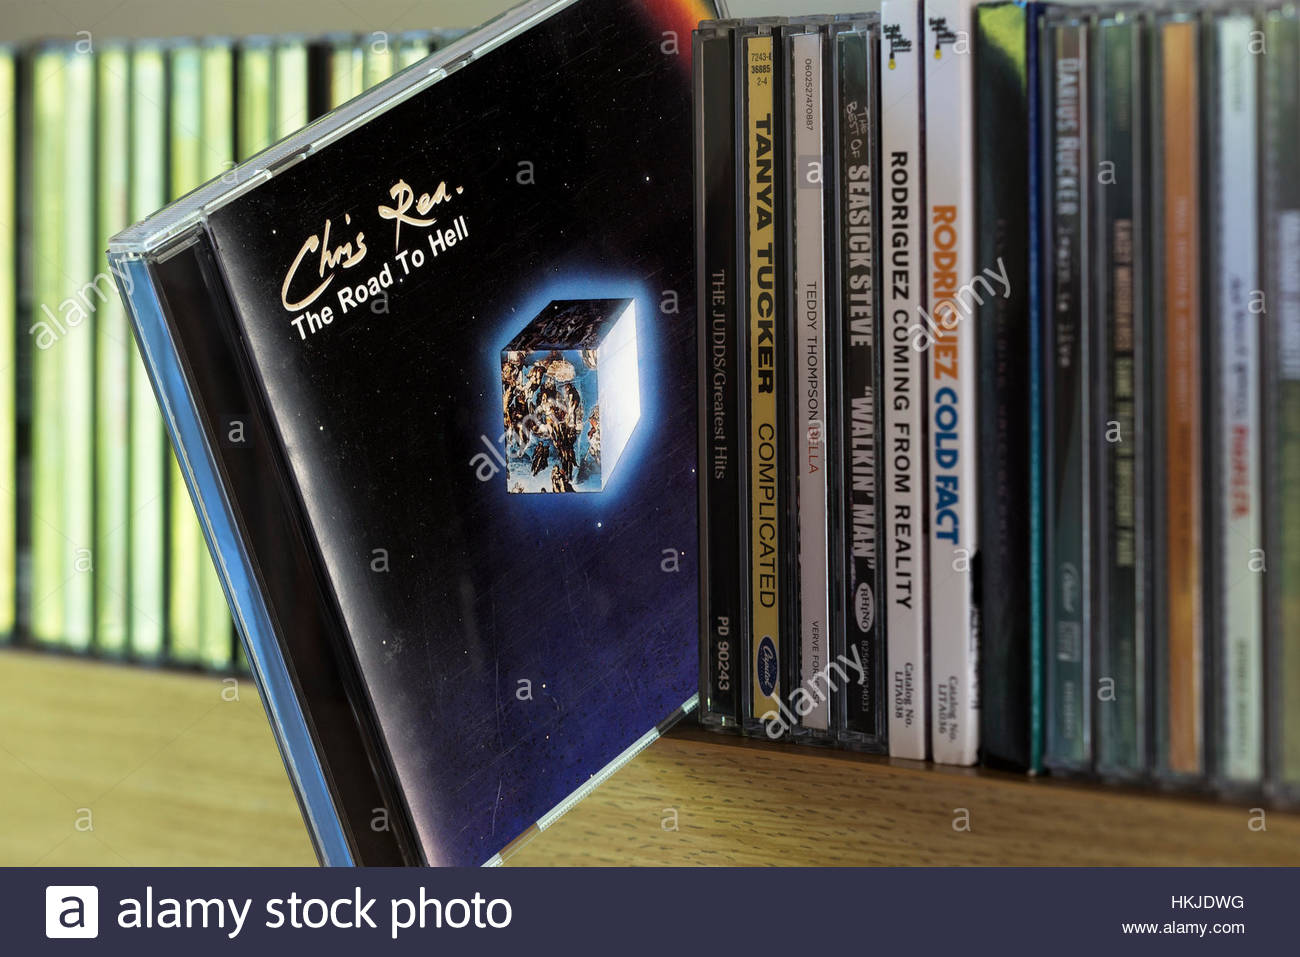 The Road To Hell, Chris Rea CD pulled out from among other CD's on a shelf - Stock Image